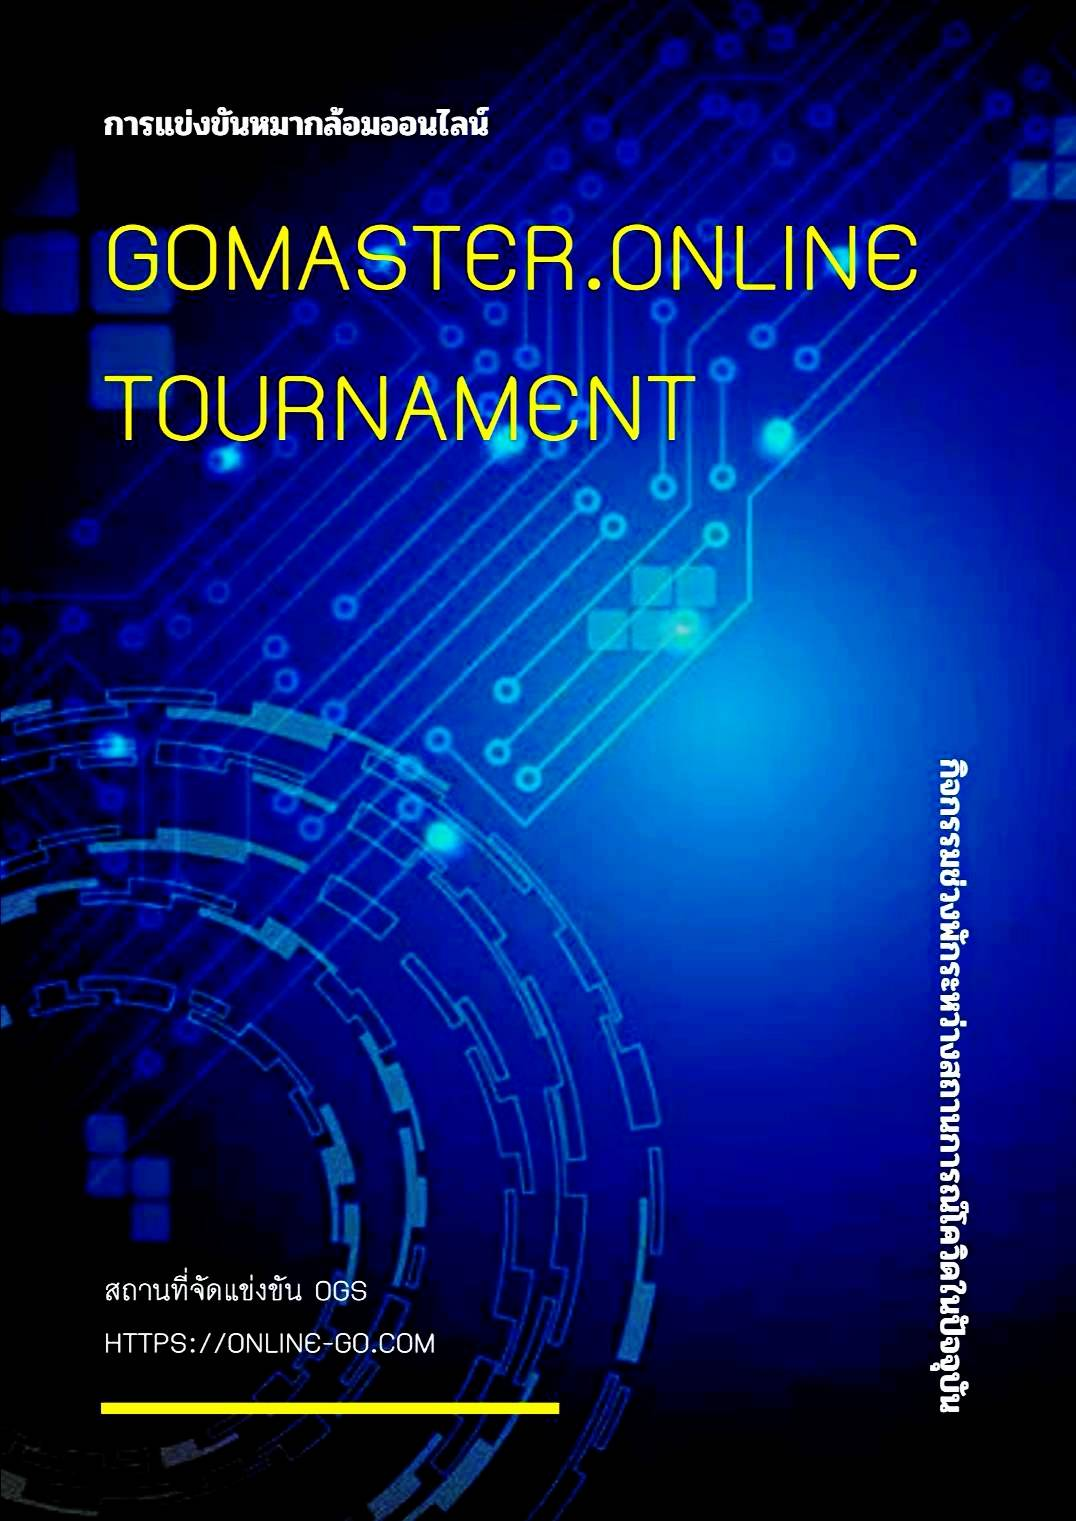 GO​MASTER.ONLINE TOURNAMENT​